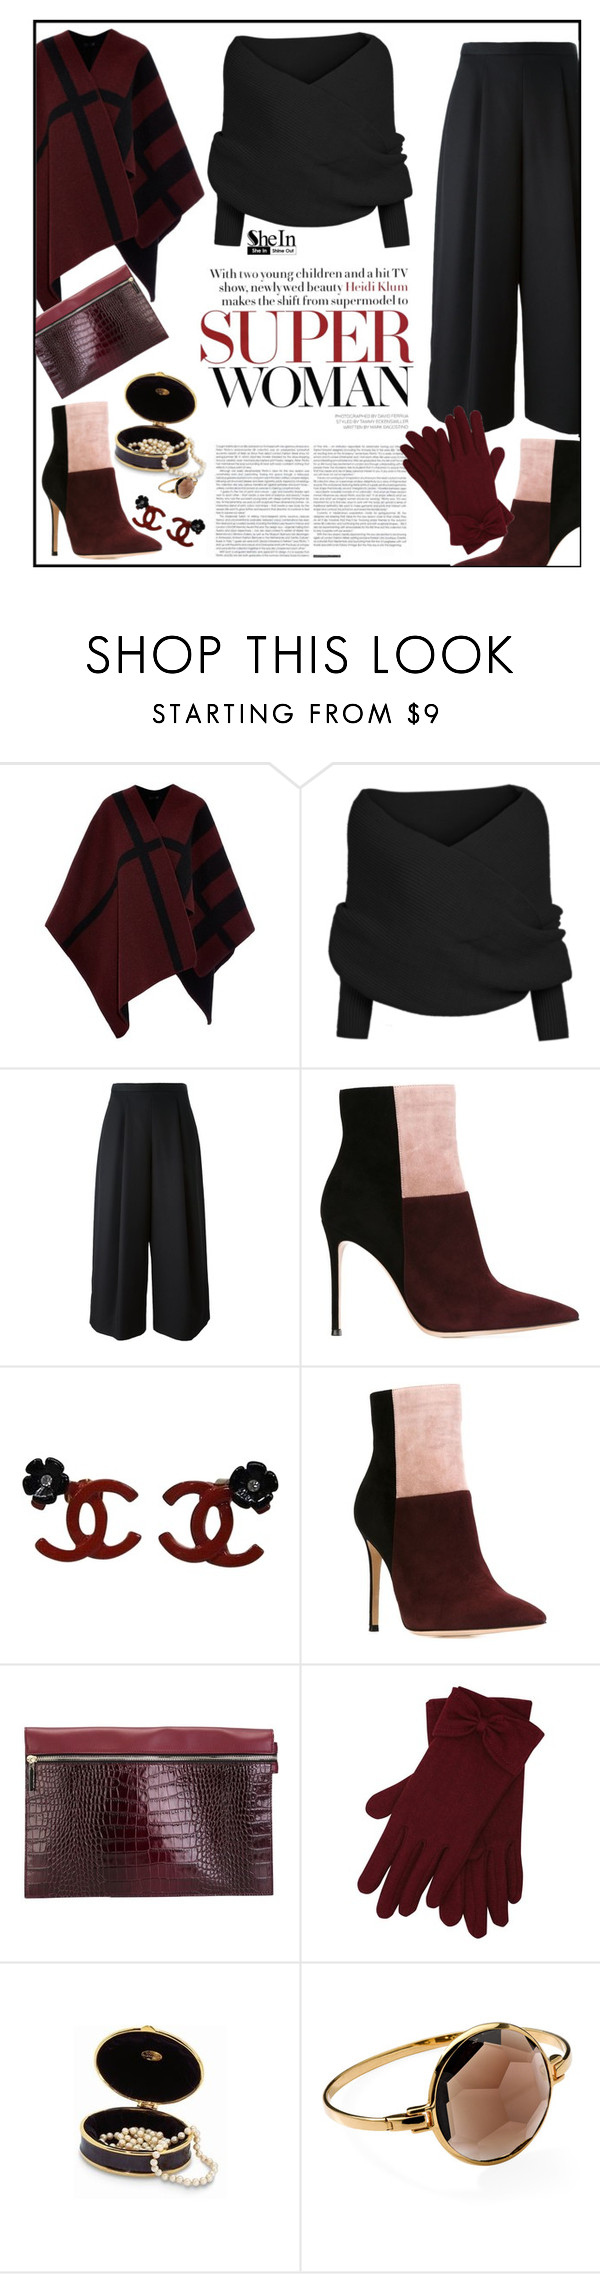 """Black Knit Sweater in SheIn!"" by ceci-alva on Polyvore featuring Mode, Burberry, Viktor & Rolf, Gianvito Rossi, Chanel, Victoria Beckham, M&Co und Ippolita"